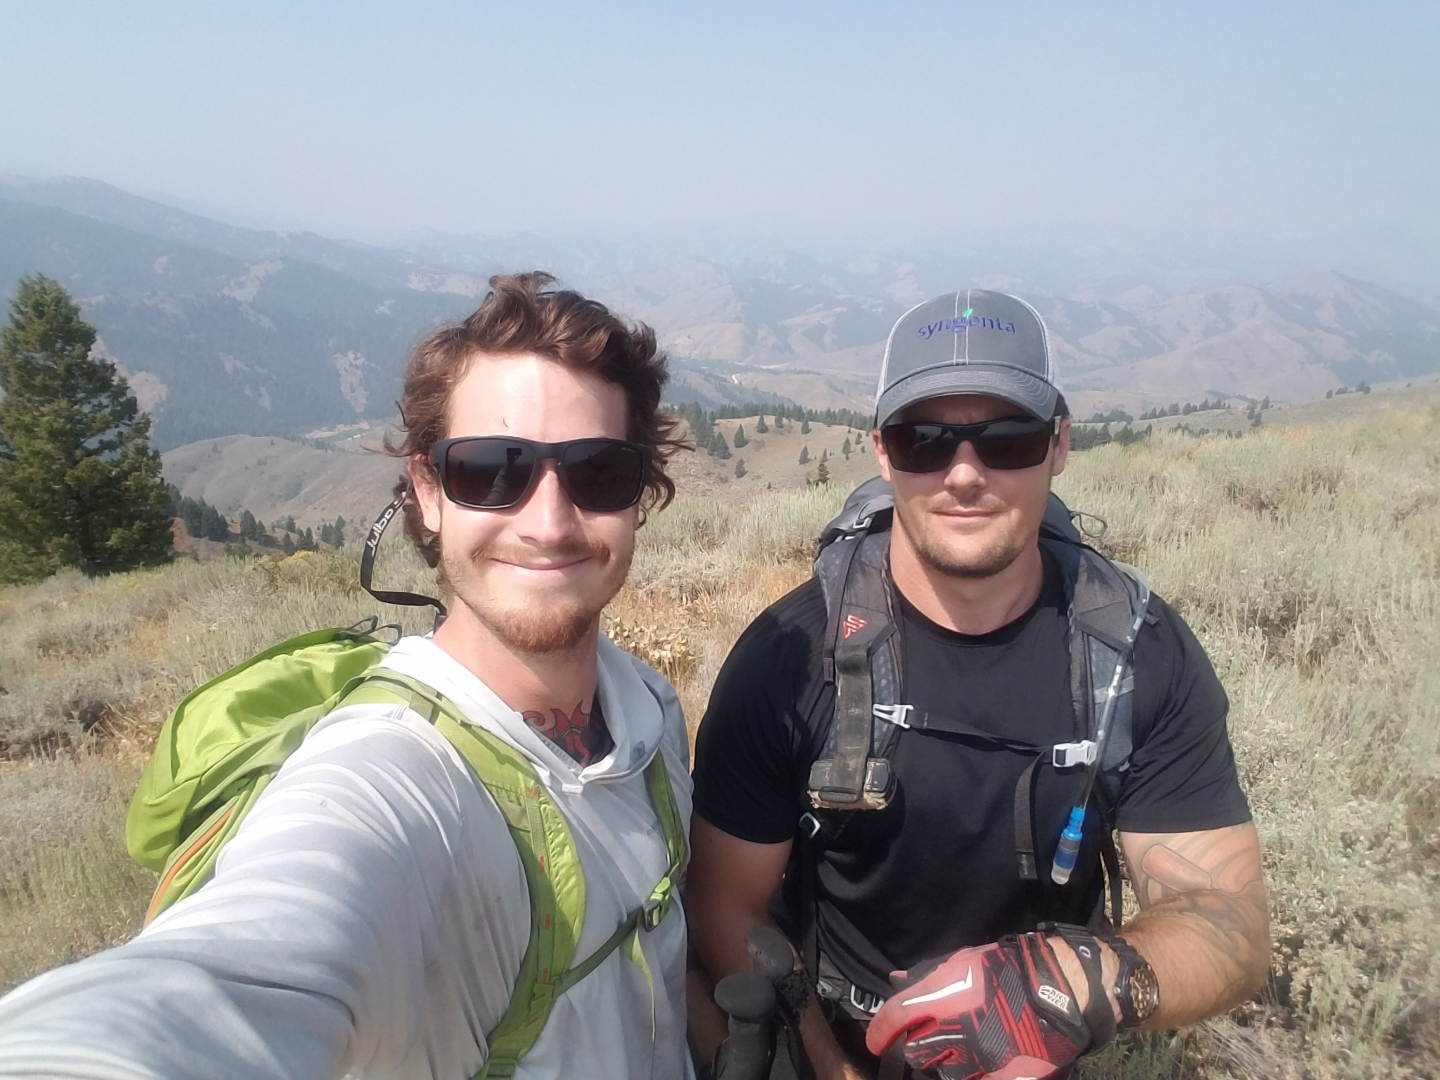 Curtis Johnson and Stephen Connell - prior Recon Marines of 2D Reconnaissance Battalion